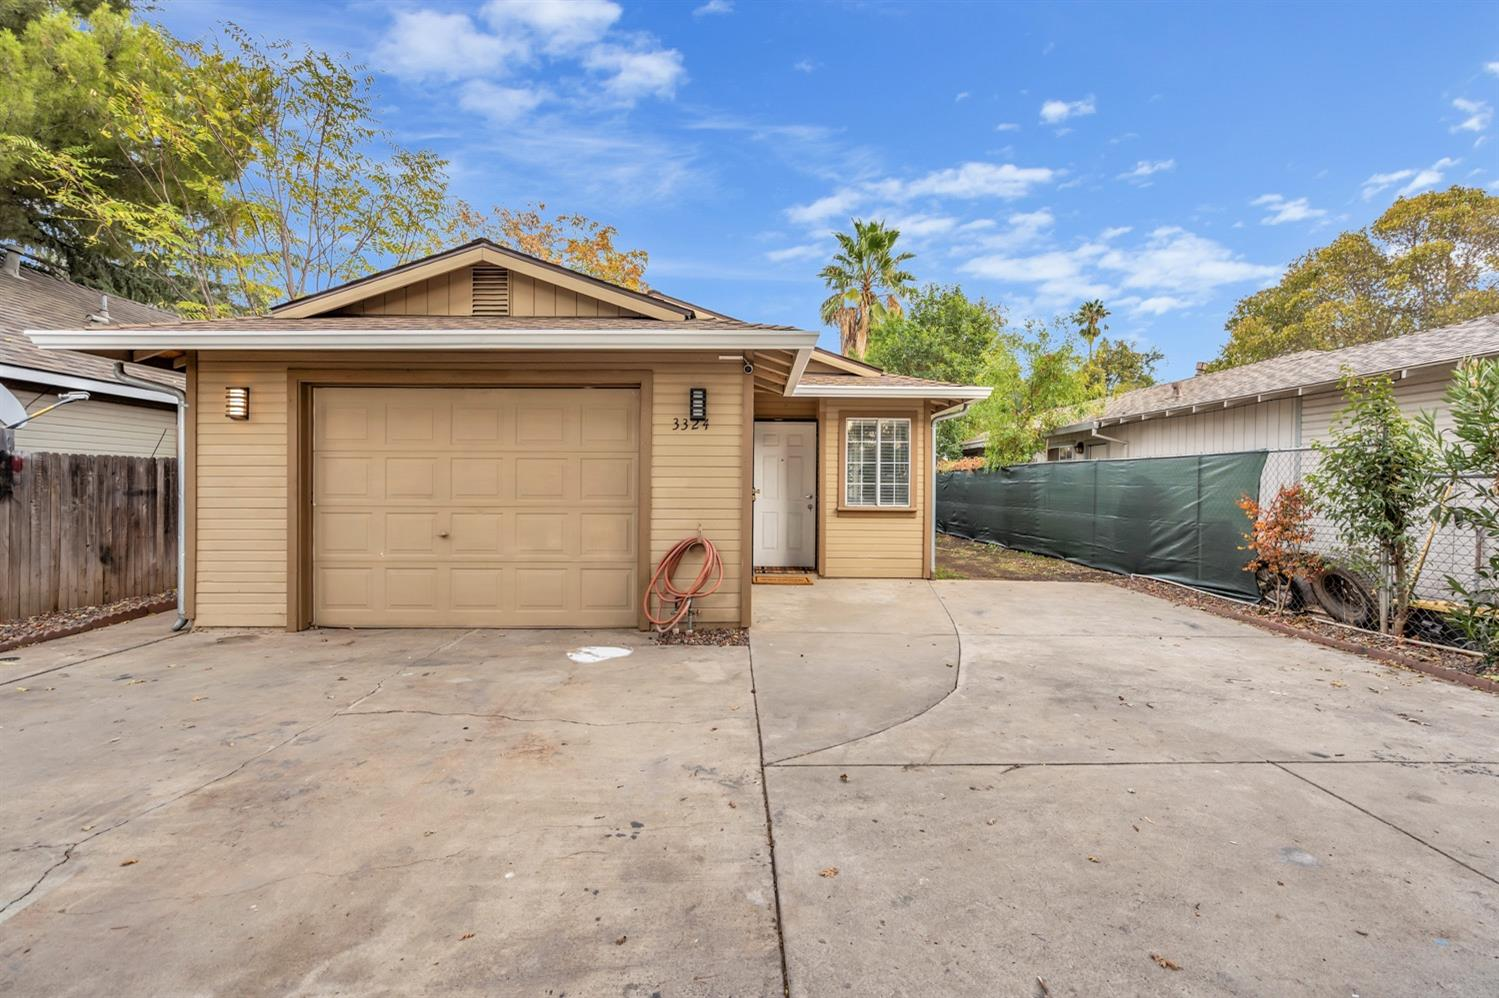 This 2/3 bedroom 1 bathroom home has been well cared for, and tastefully updated.  The interior was